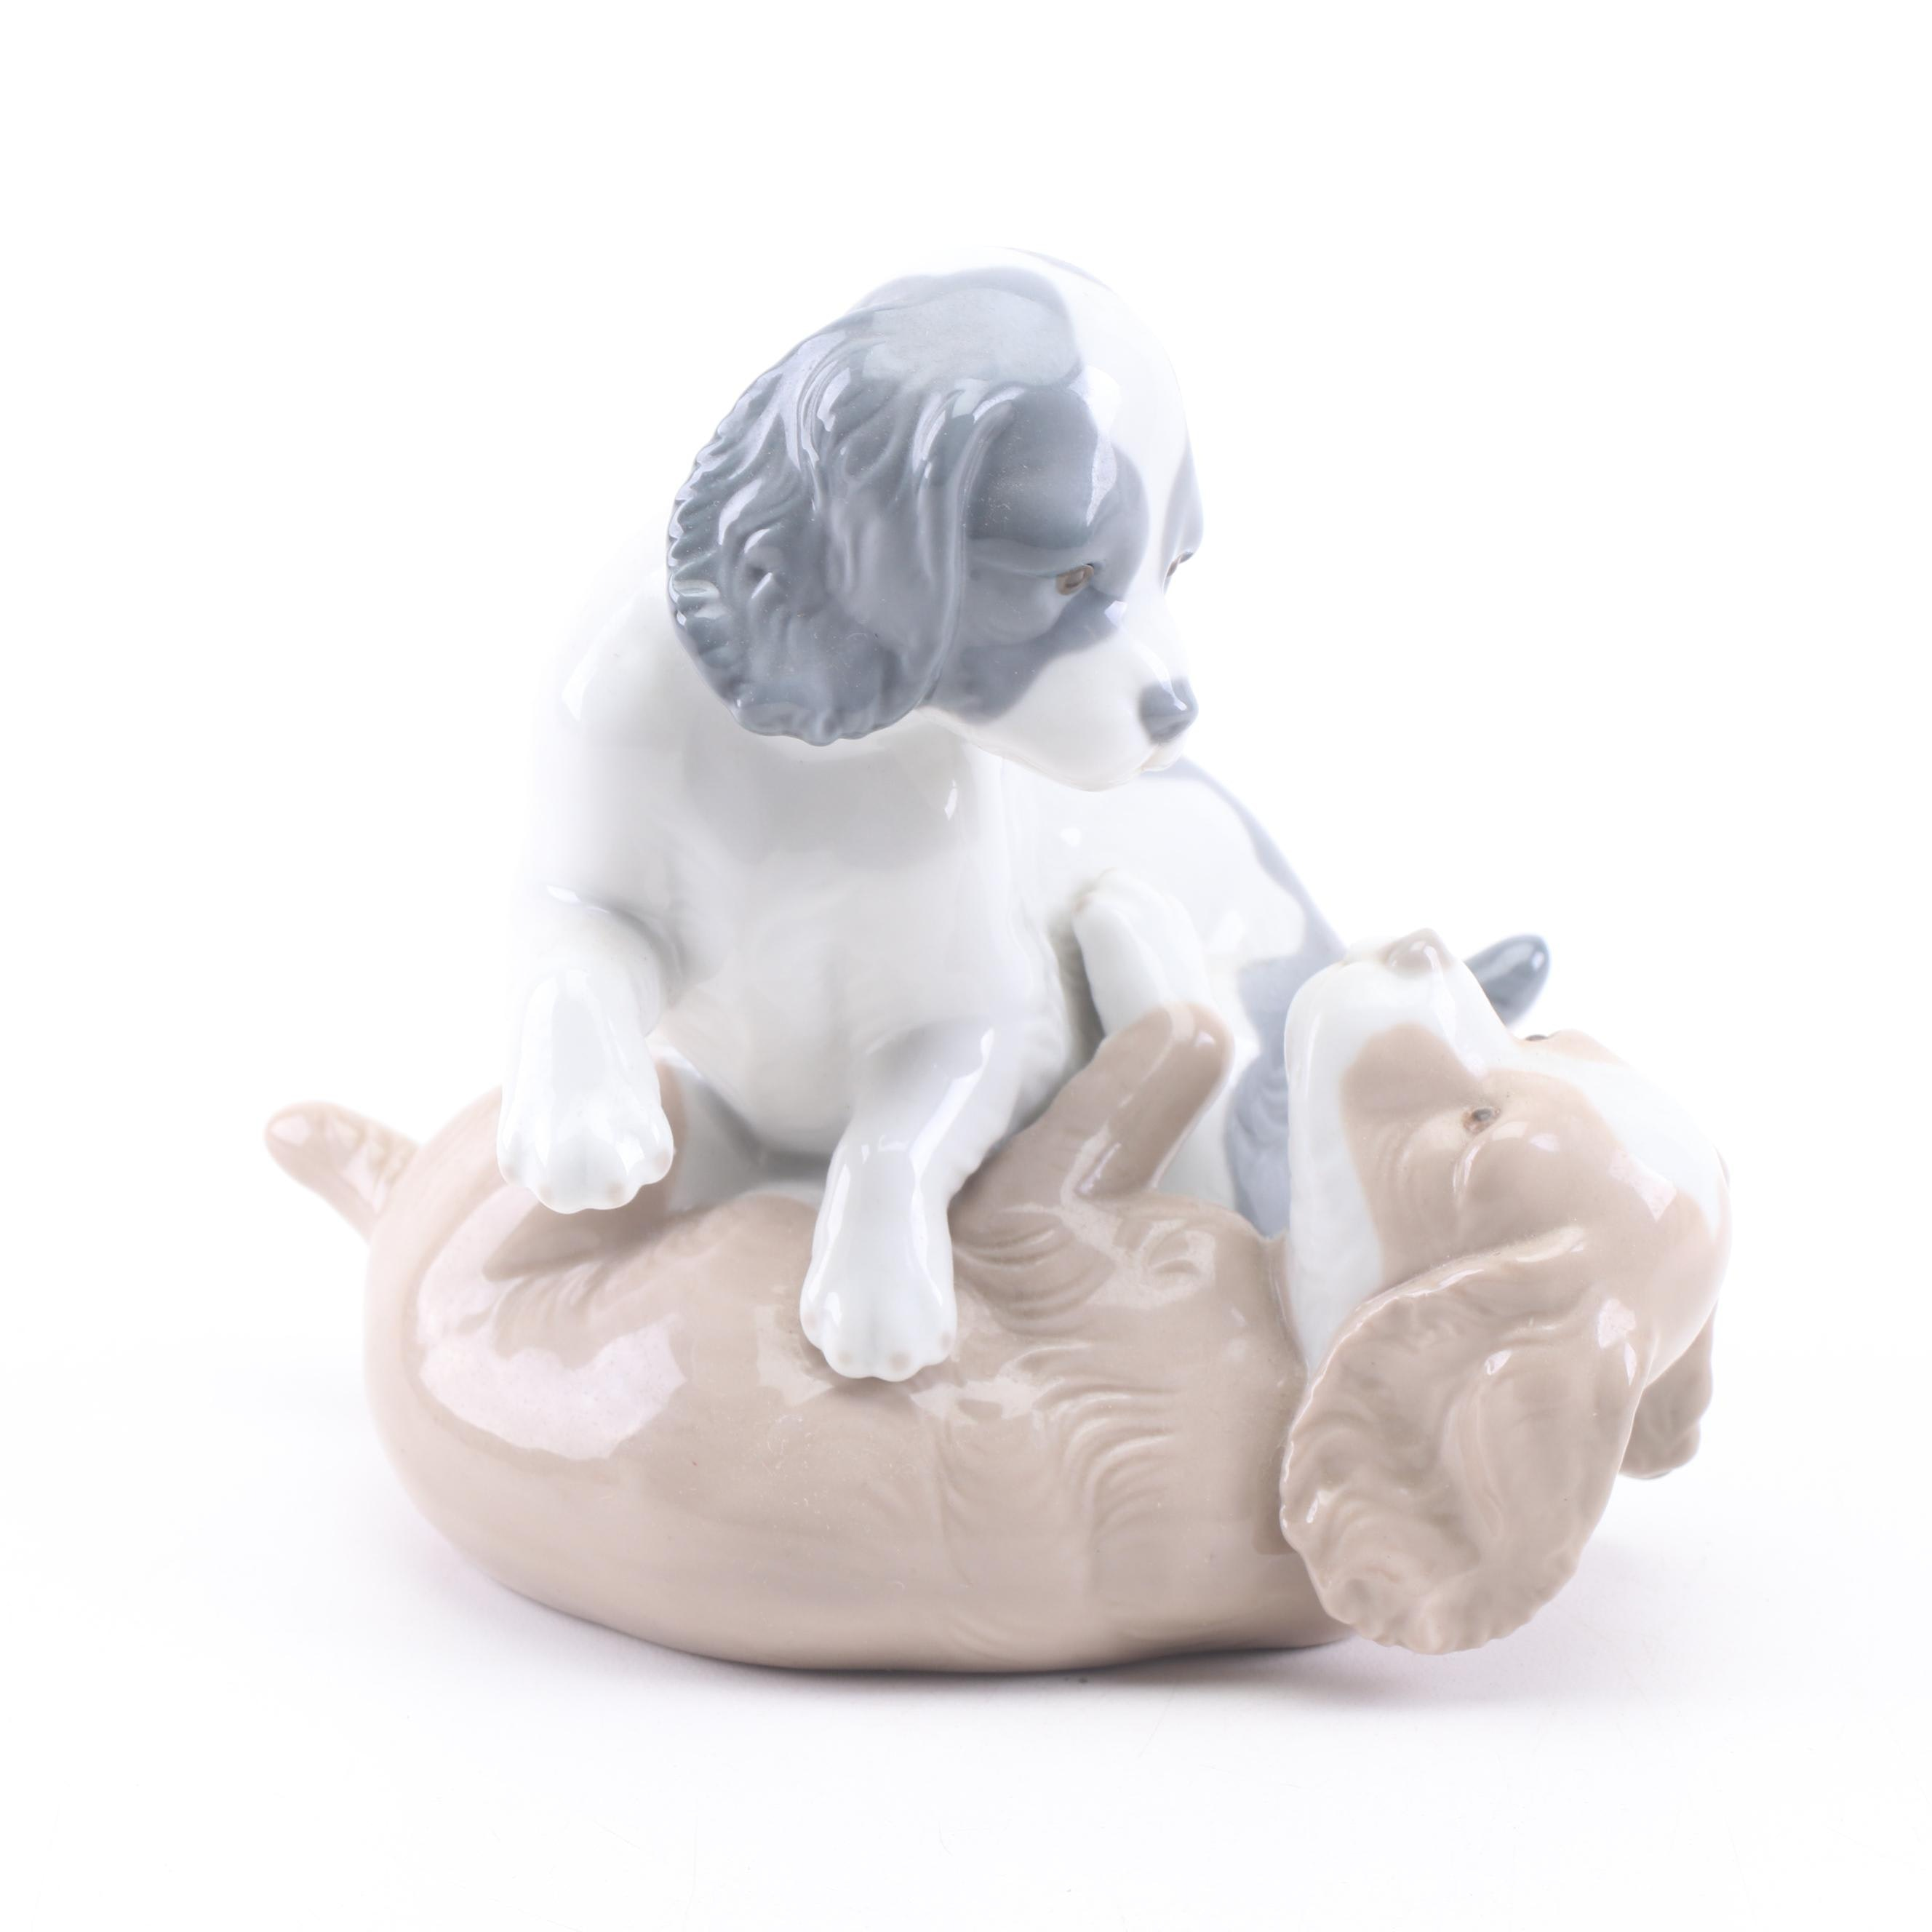 Nao by Lladro Playing Dogs Porcelain Figurine, 1983